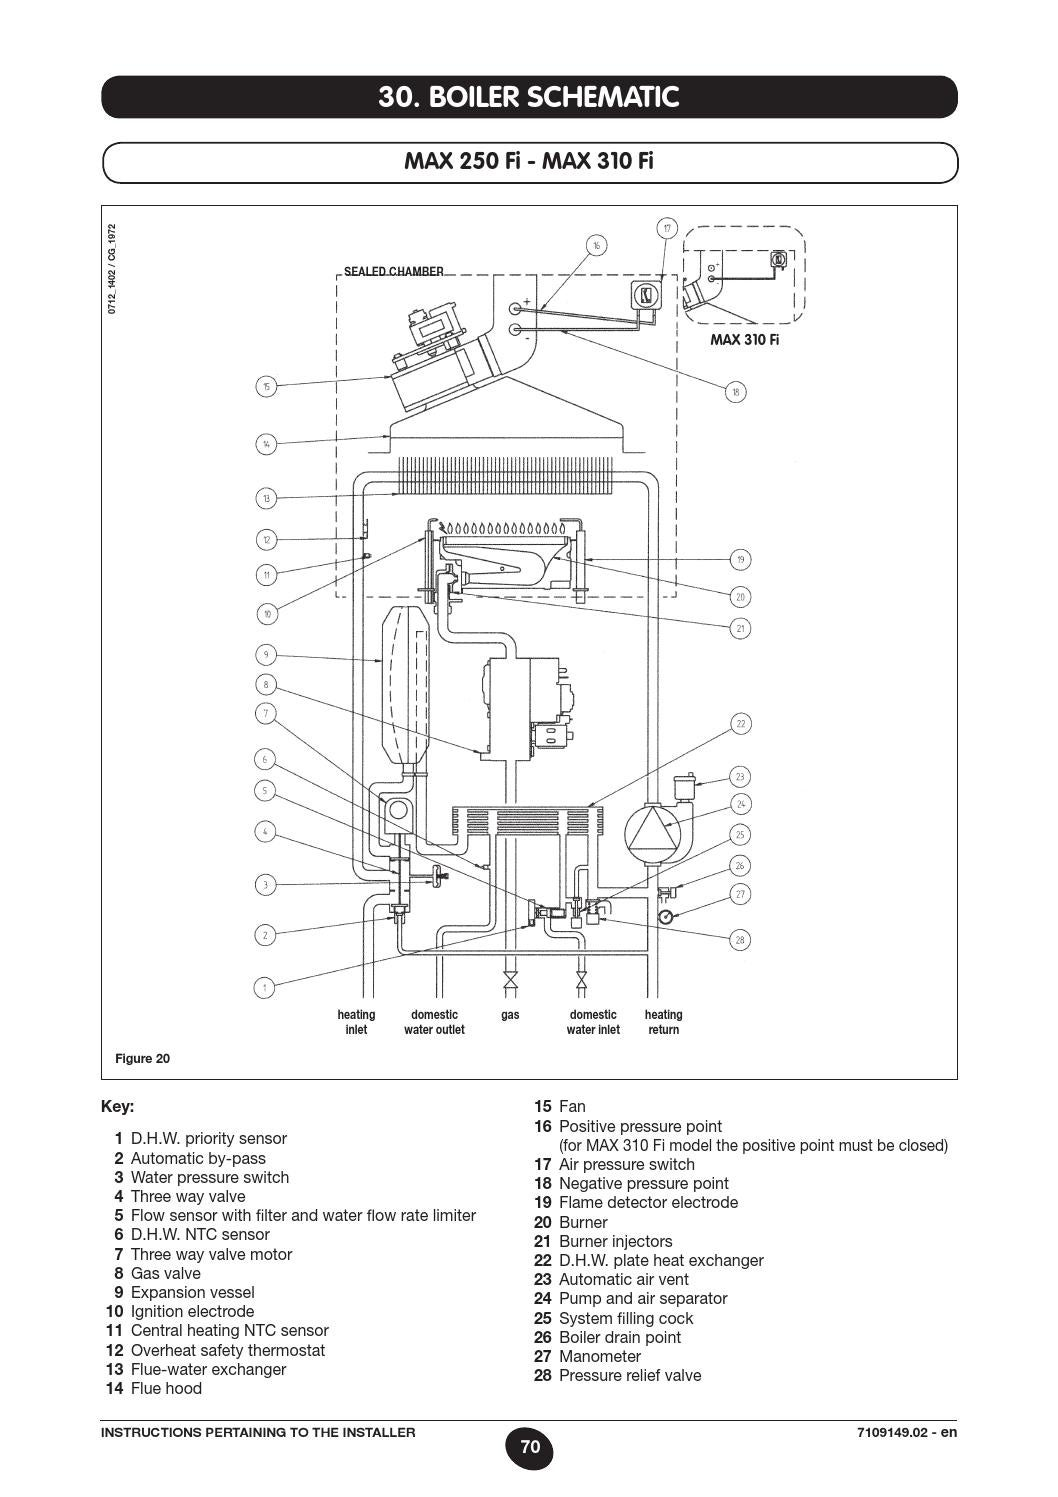 Manuale luna 3 comfort max baxi by baxi spa issuu for Baxi eco 3 manuale